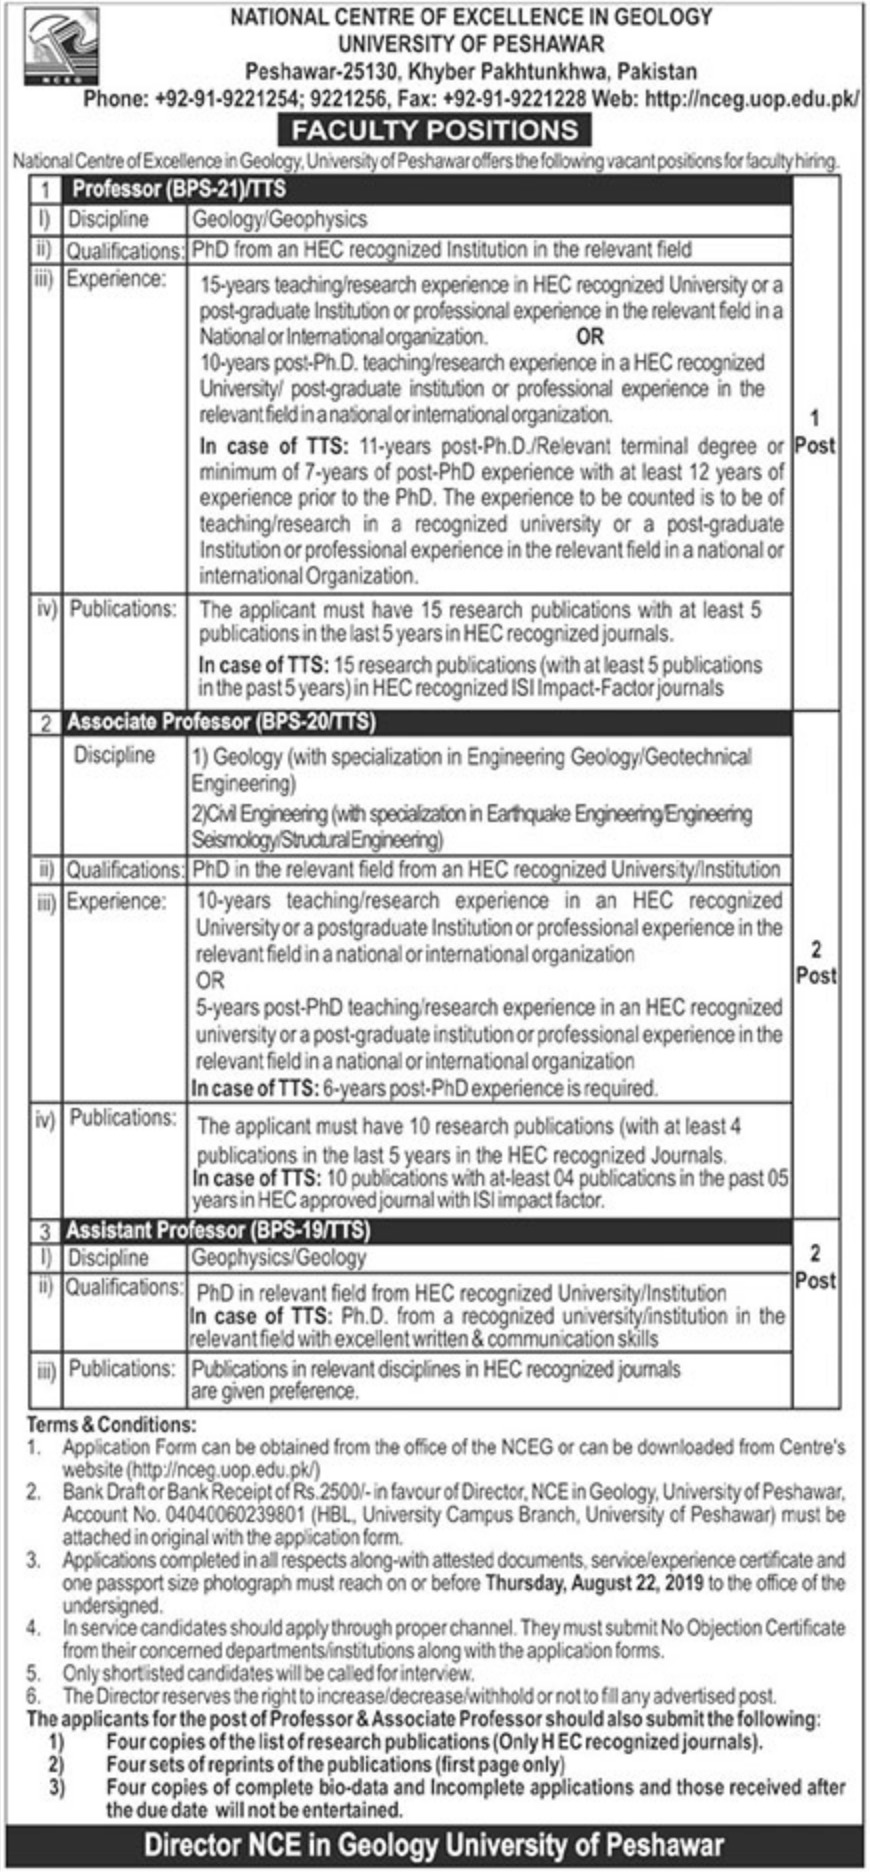 University of Peshawar Jobs 2019 Download Application Form